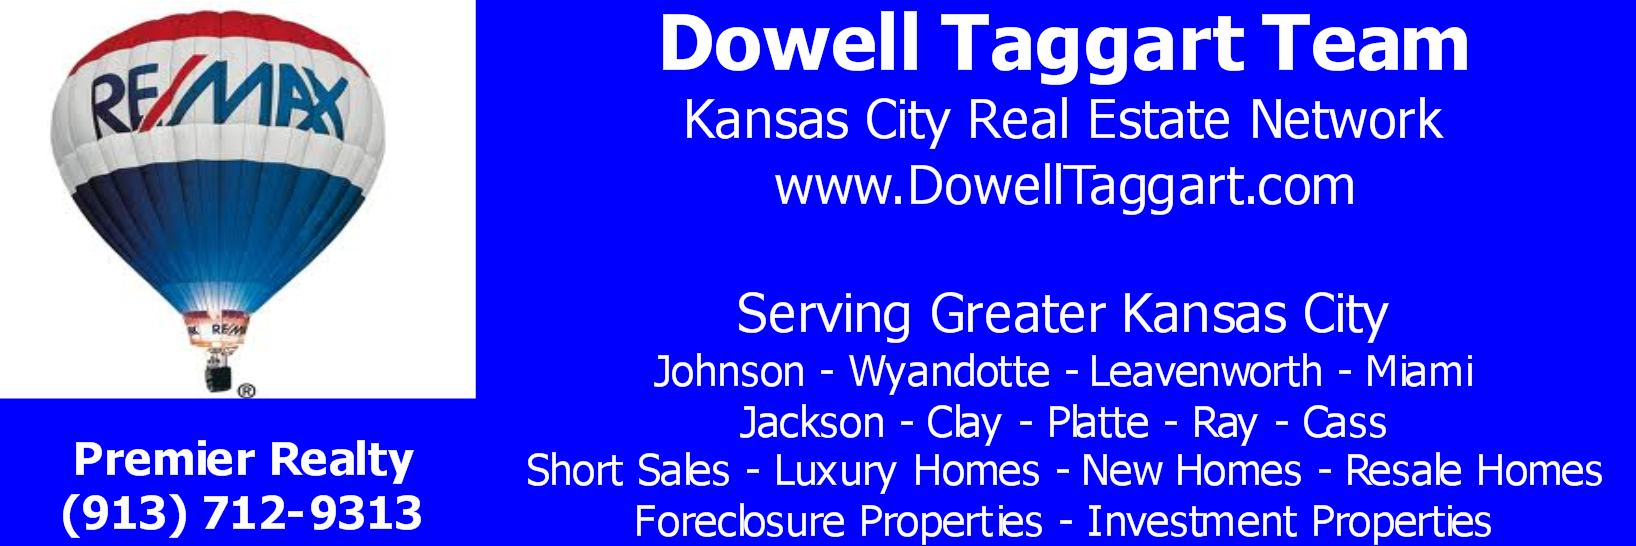 Dowell Taggart Team Kansas City Real Estate Network